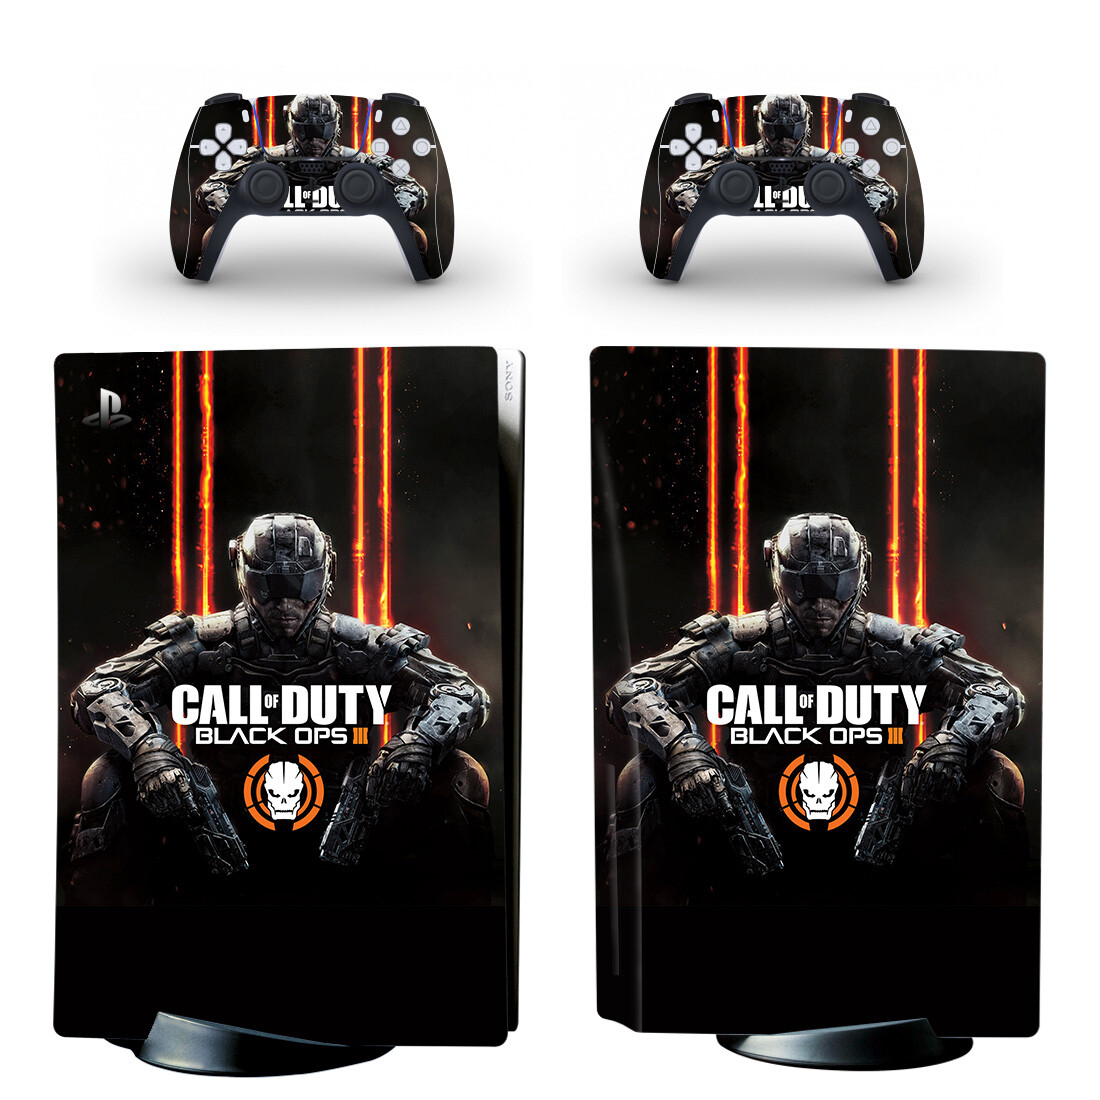 Call of Duty Black Ops 3 Skin Sticker For PlayStation 5 And Controllers